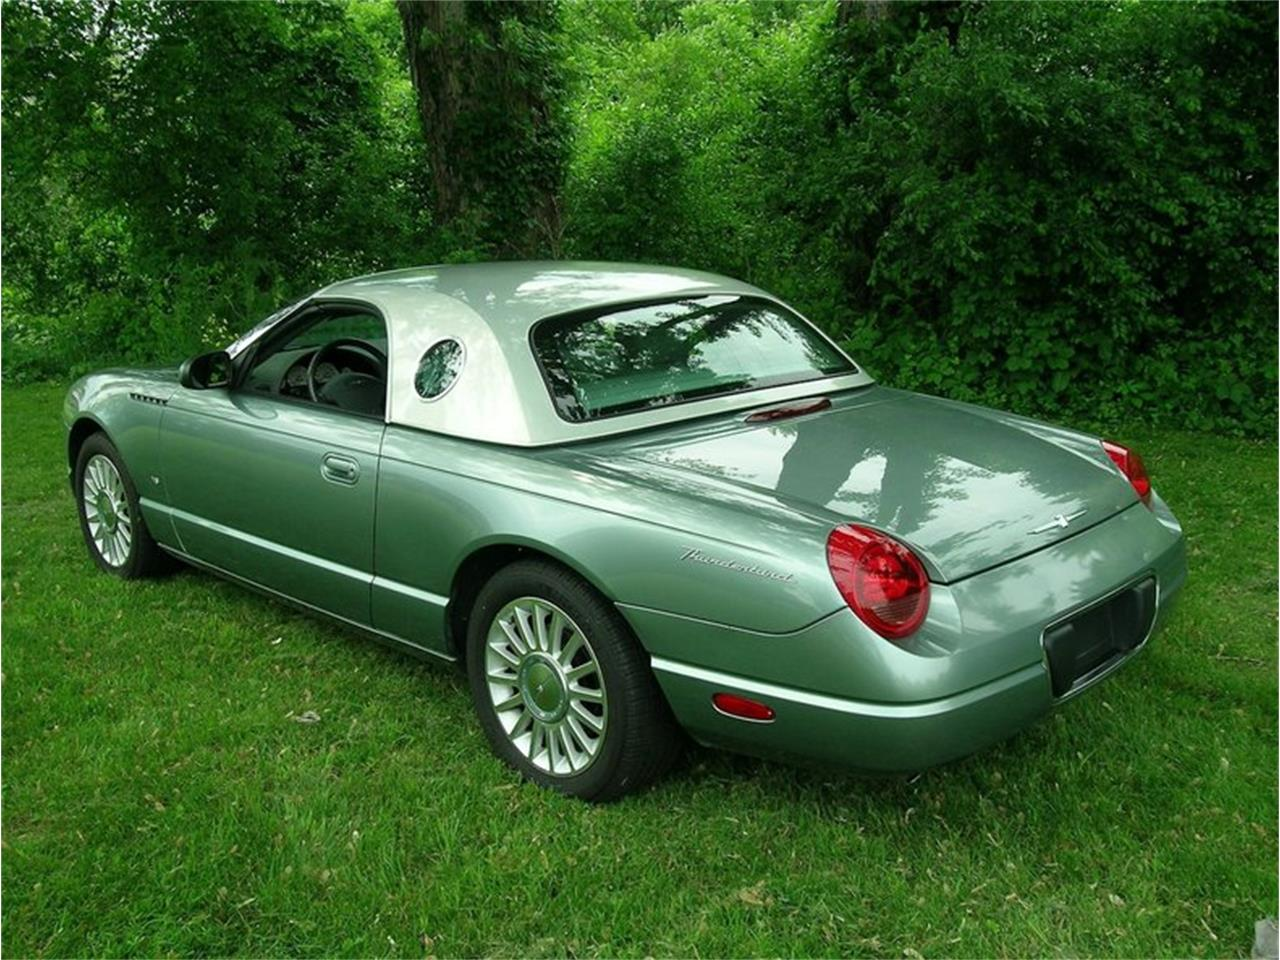 2004 Ford Thunderbird for sale in Saratoga Springs, NY – photo 5